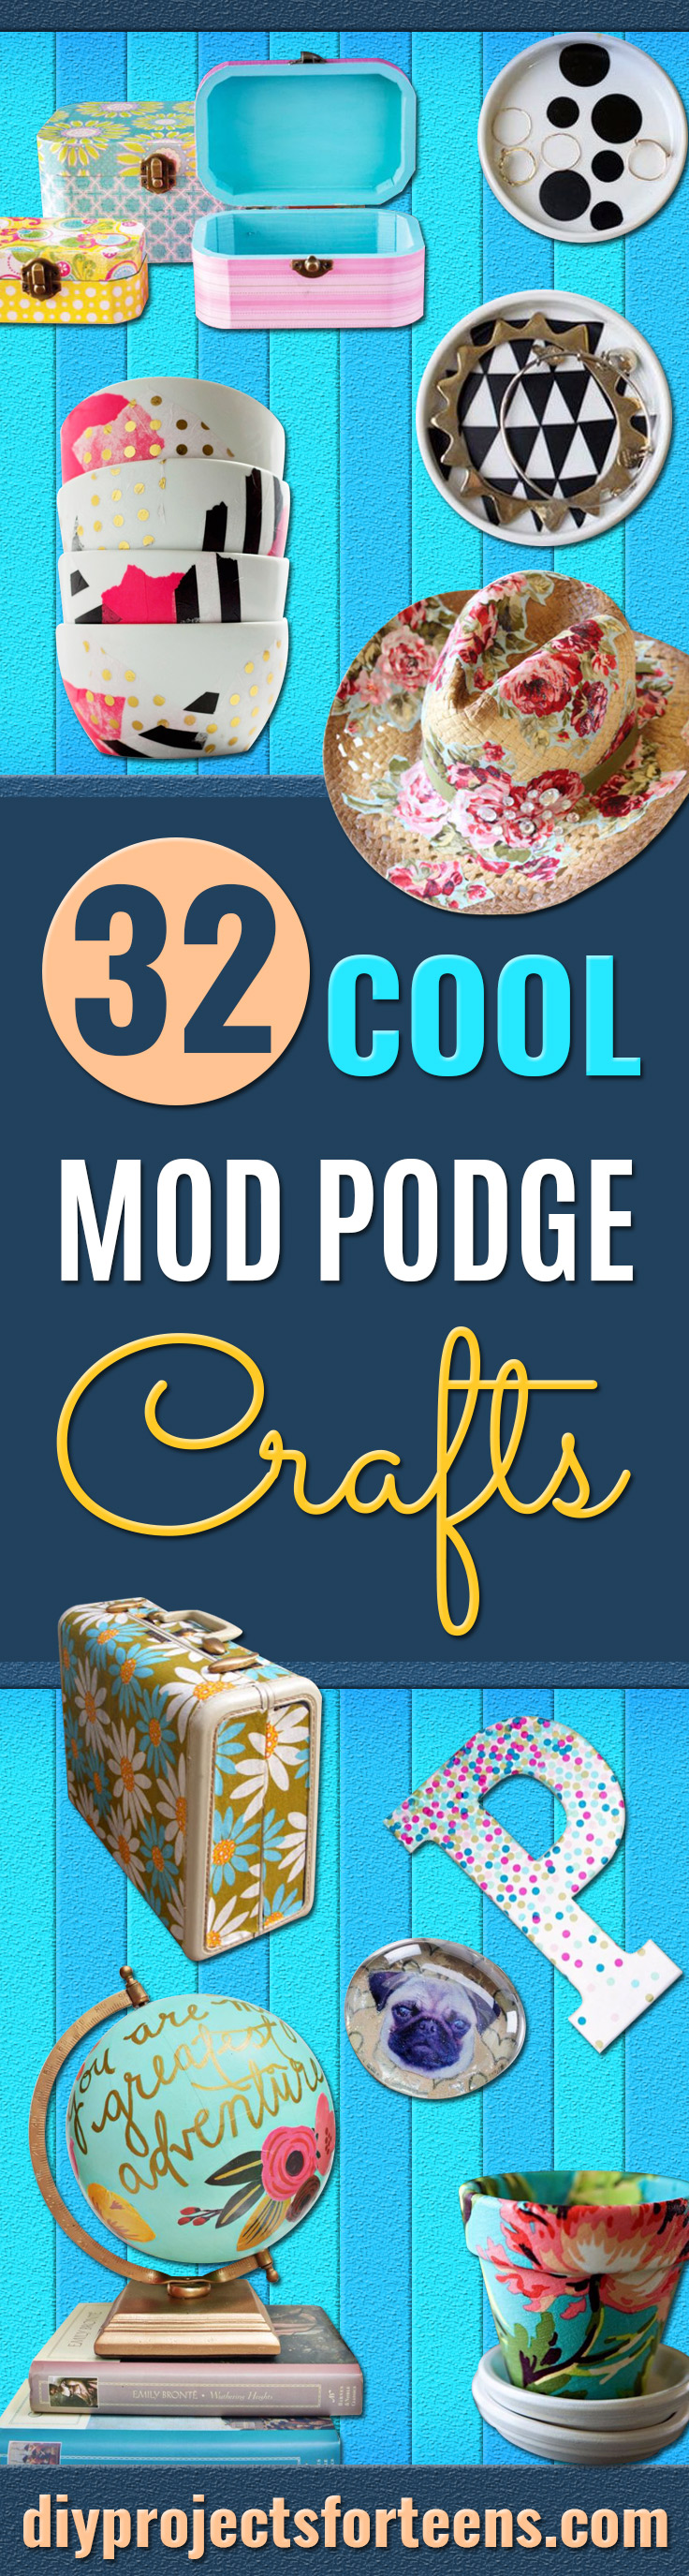 Mod Podge Crafts - DIY Modge Podge Ideas On Wood, Glass, Canvases, Fabric, Paper and Mason Jars - How To Make Pictures, Home Decor, Easy Craft Ideas and DIY Wall Art for Beginners - Cute, Cheap Crafty Homemade Gifts for Christmas and Birthday Presents http://diyjoy.com/mod-podge-crafts